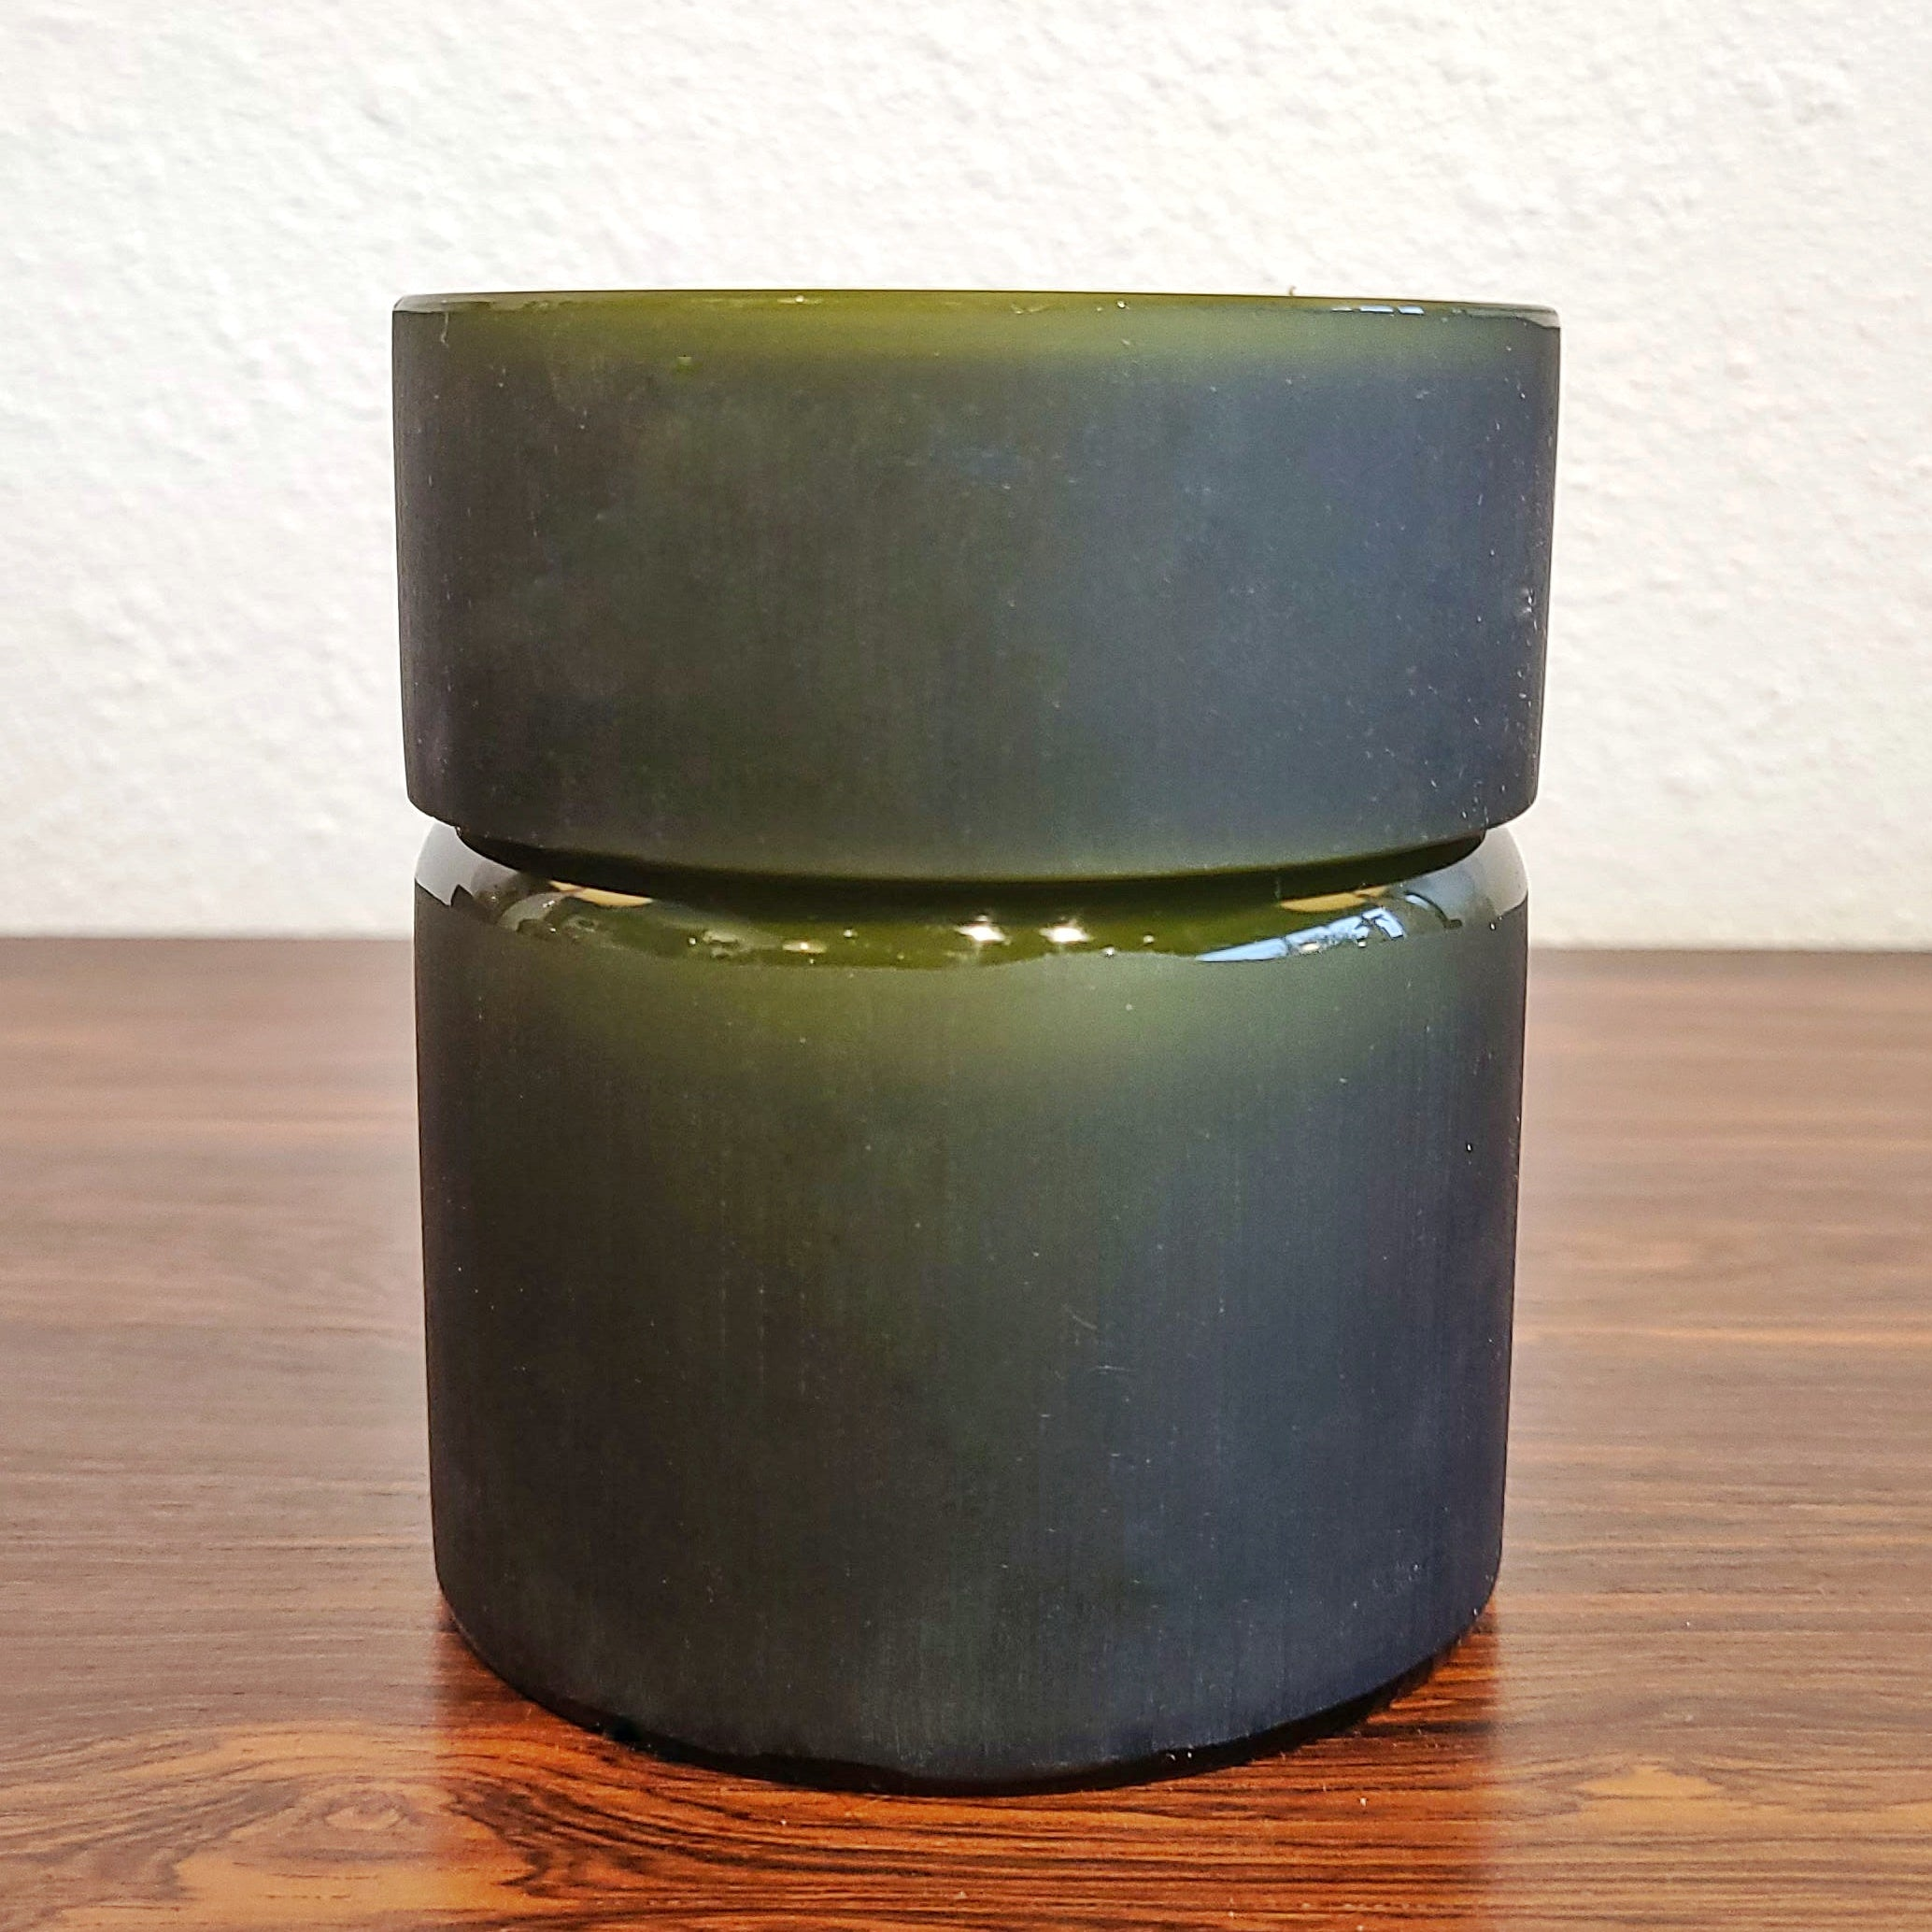 1960s VISTOSI FROSTED OLIVE GREEN AND WHITE CASED GLASS BOX (MURANO)